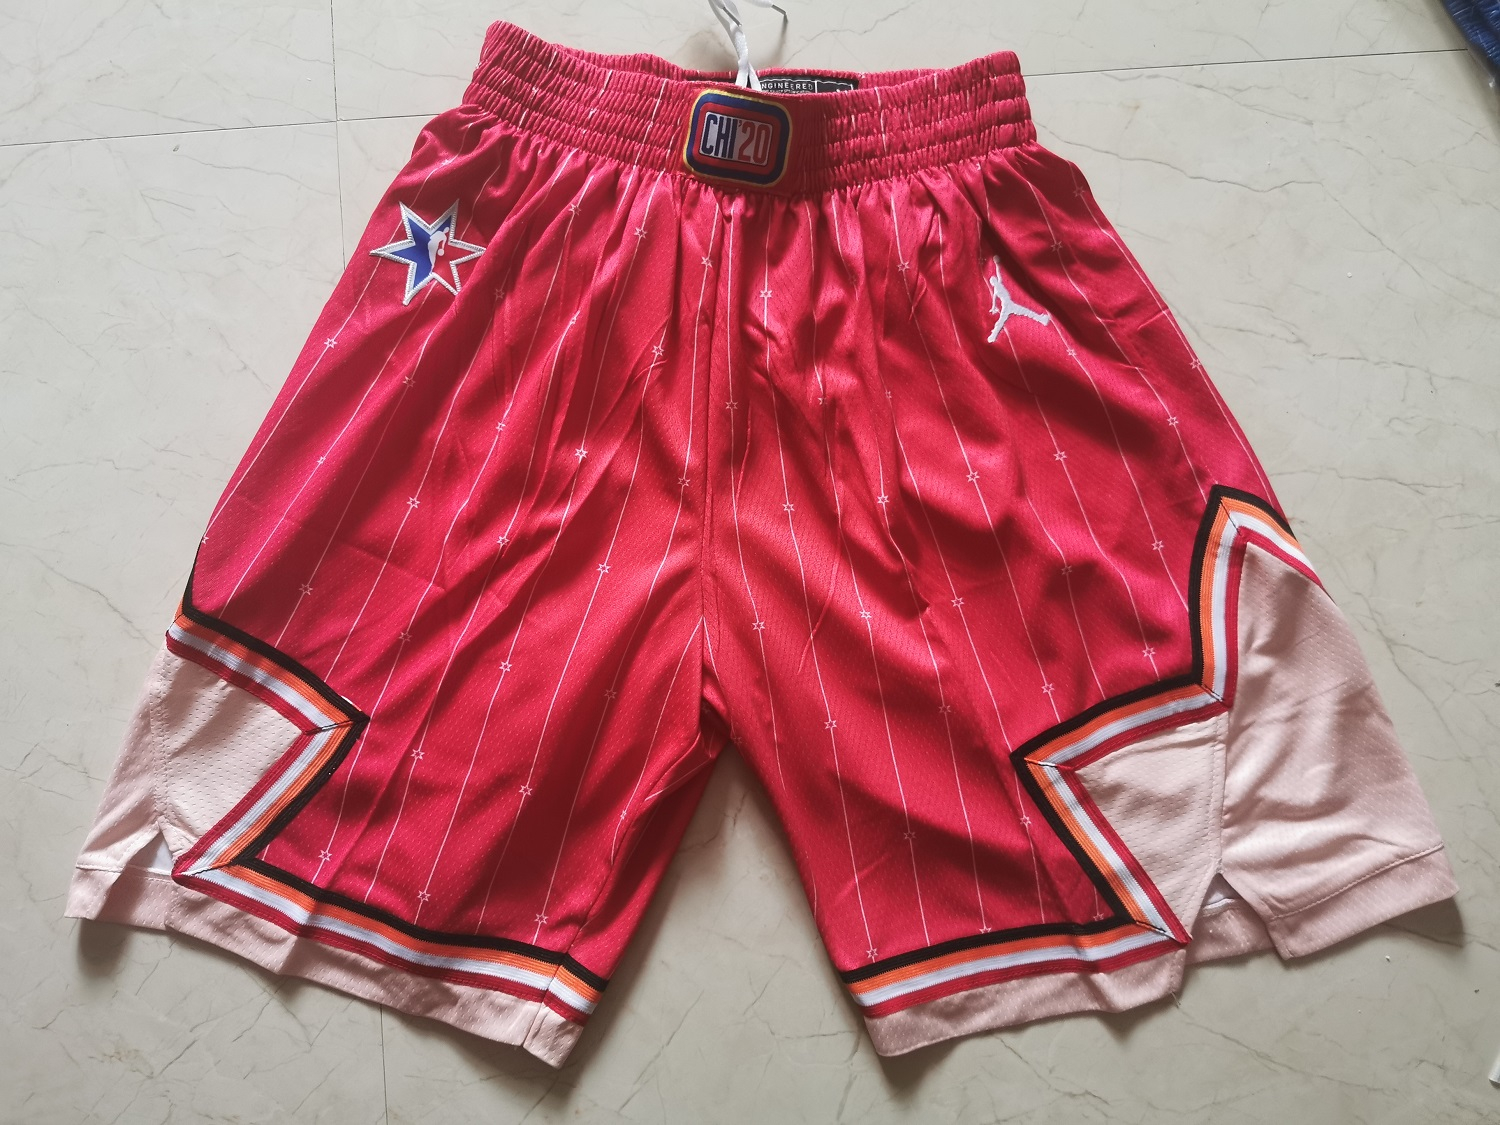 Bulls 2020 NBA All-Star Red Jordan Brand Swingman Shorts